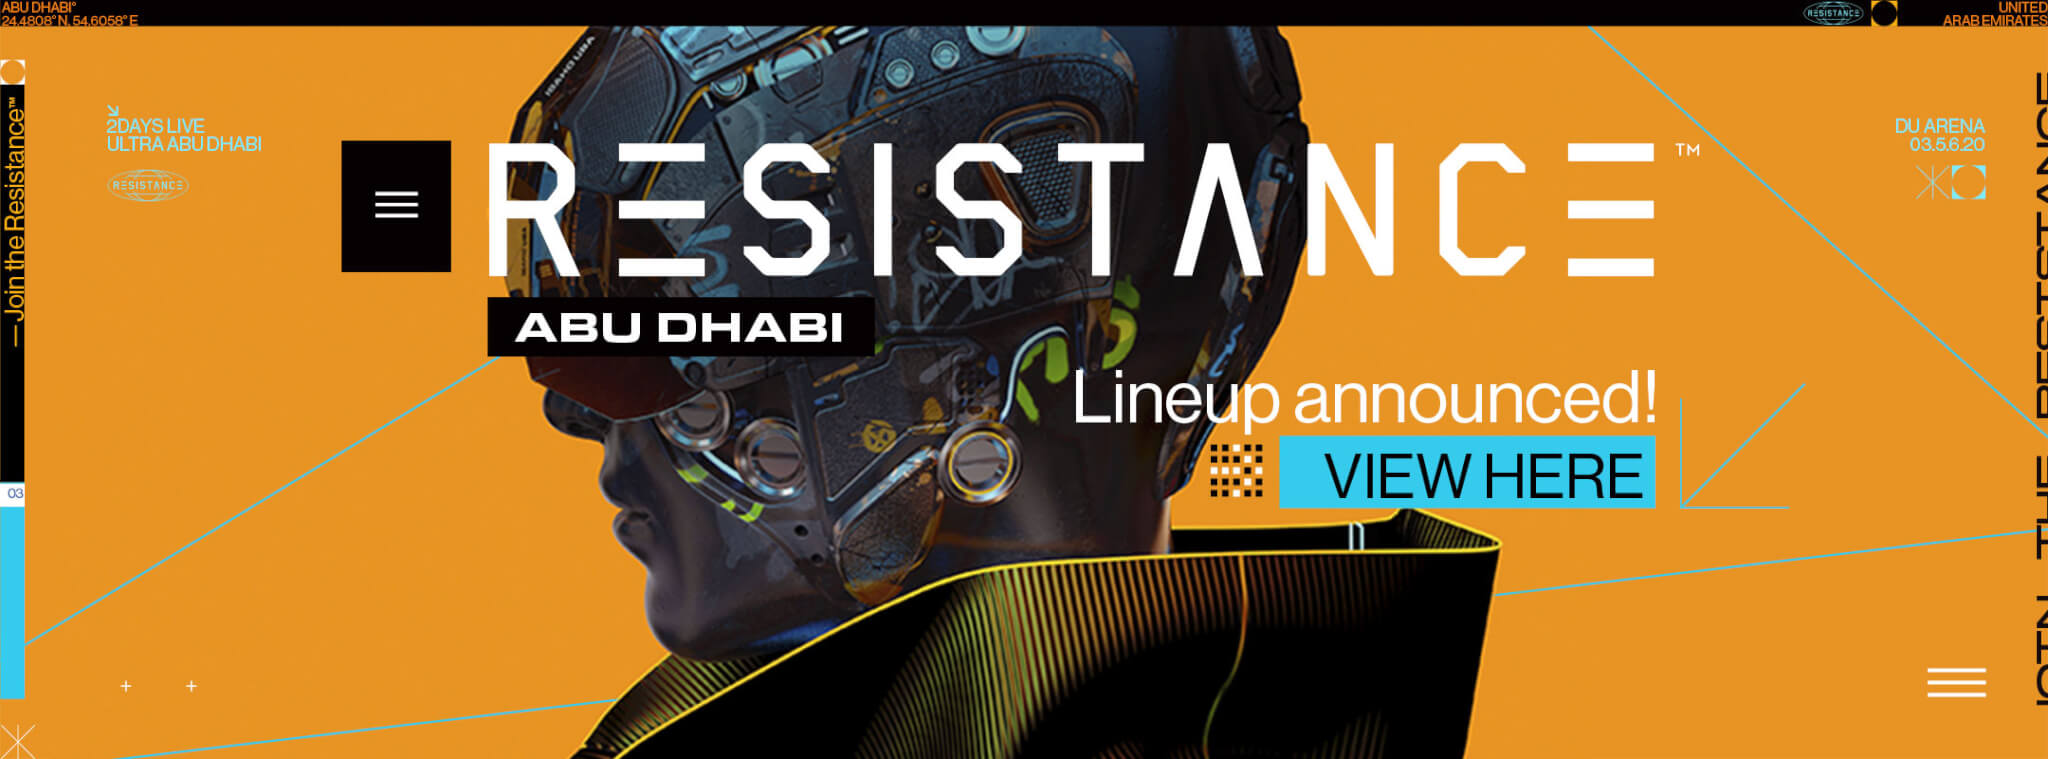 View the Resistance Abu Dhabi Lineup